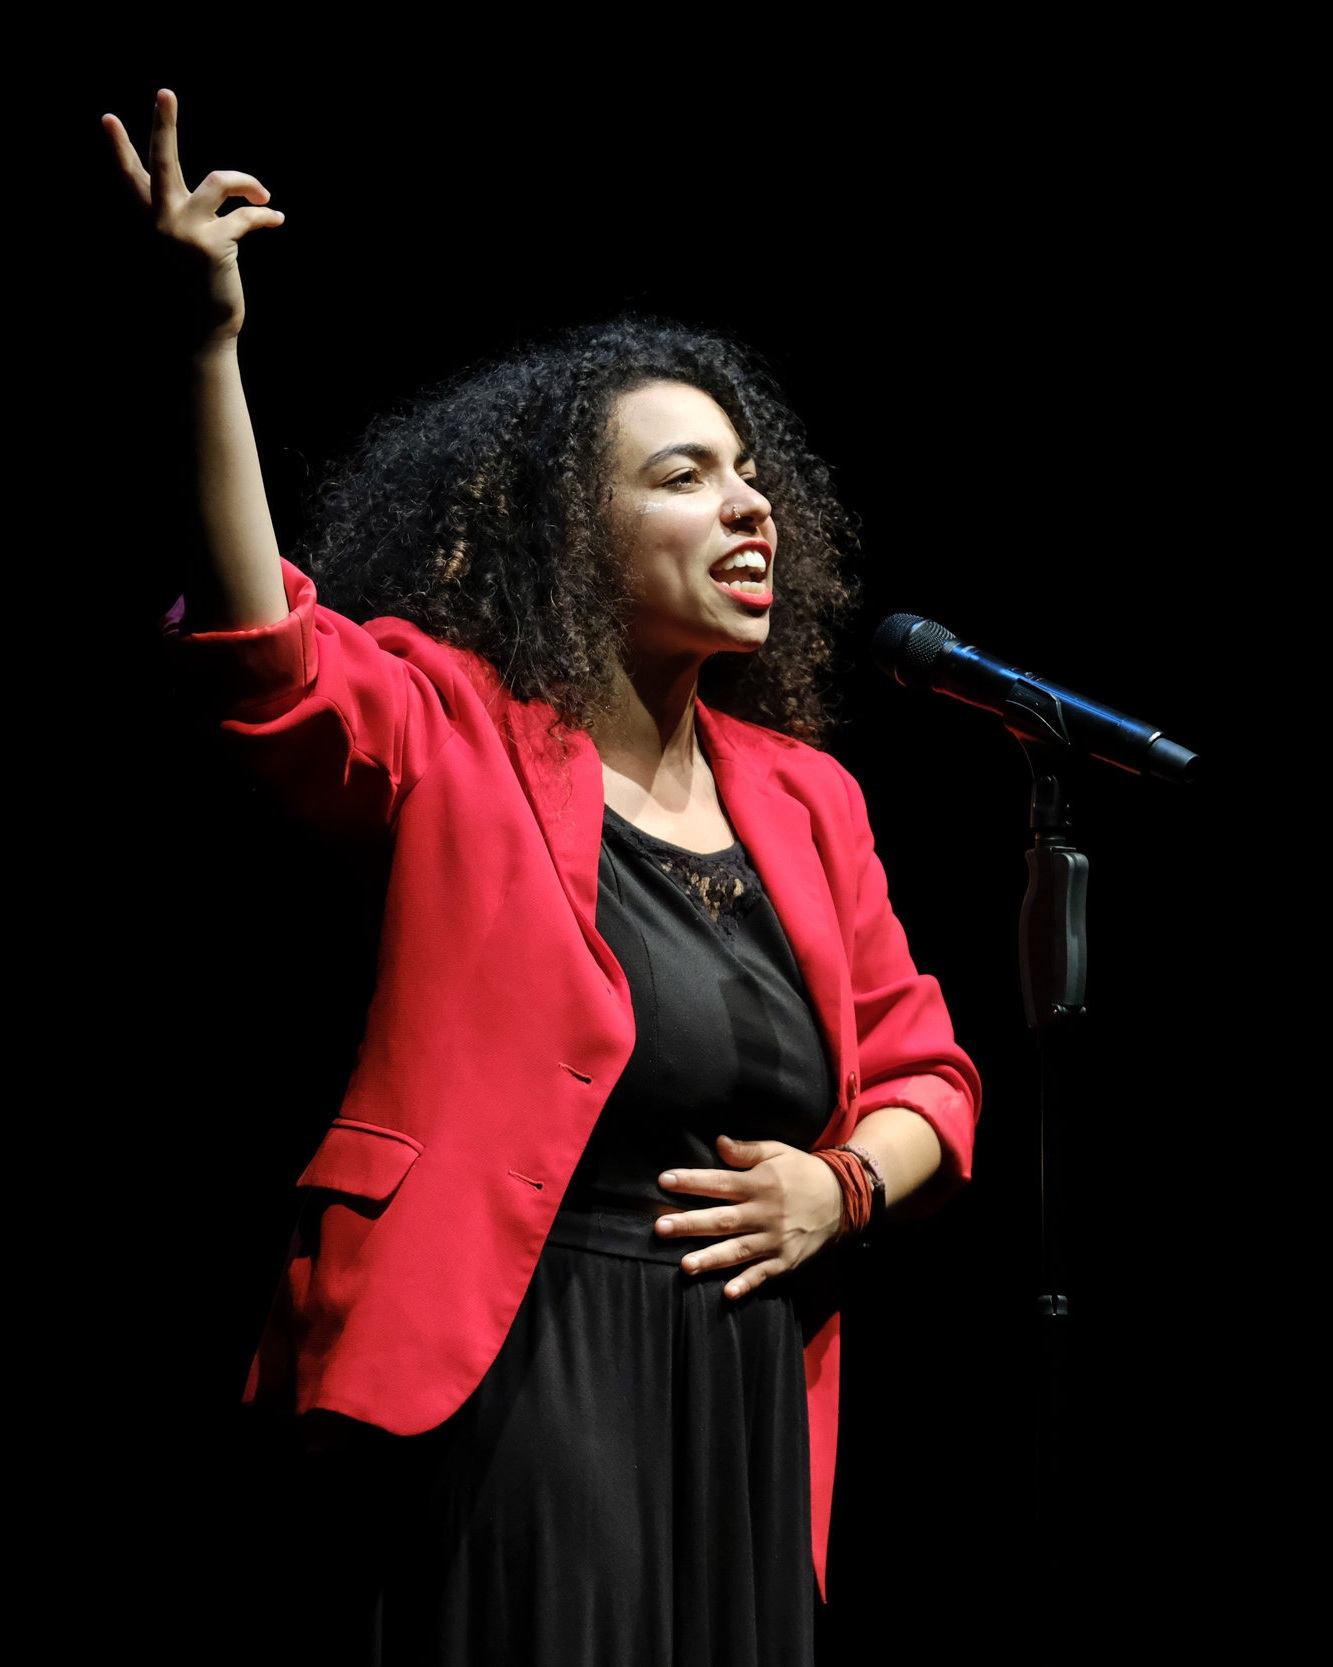 Arielle Cottingham , 2016 Australian Poetry Slam Champion, performing at the 2017 APS National Final at Sydney Opera House.